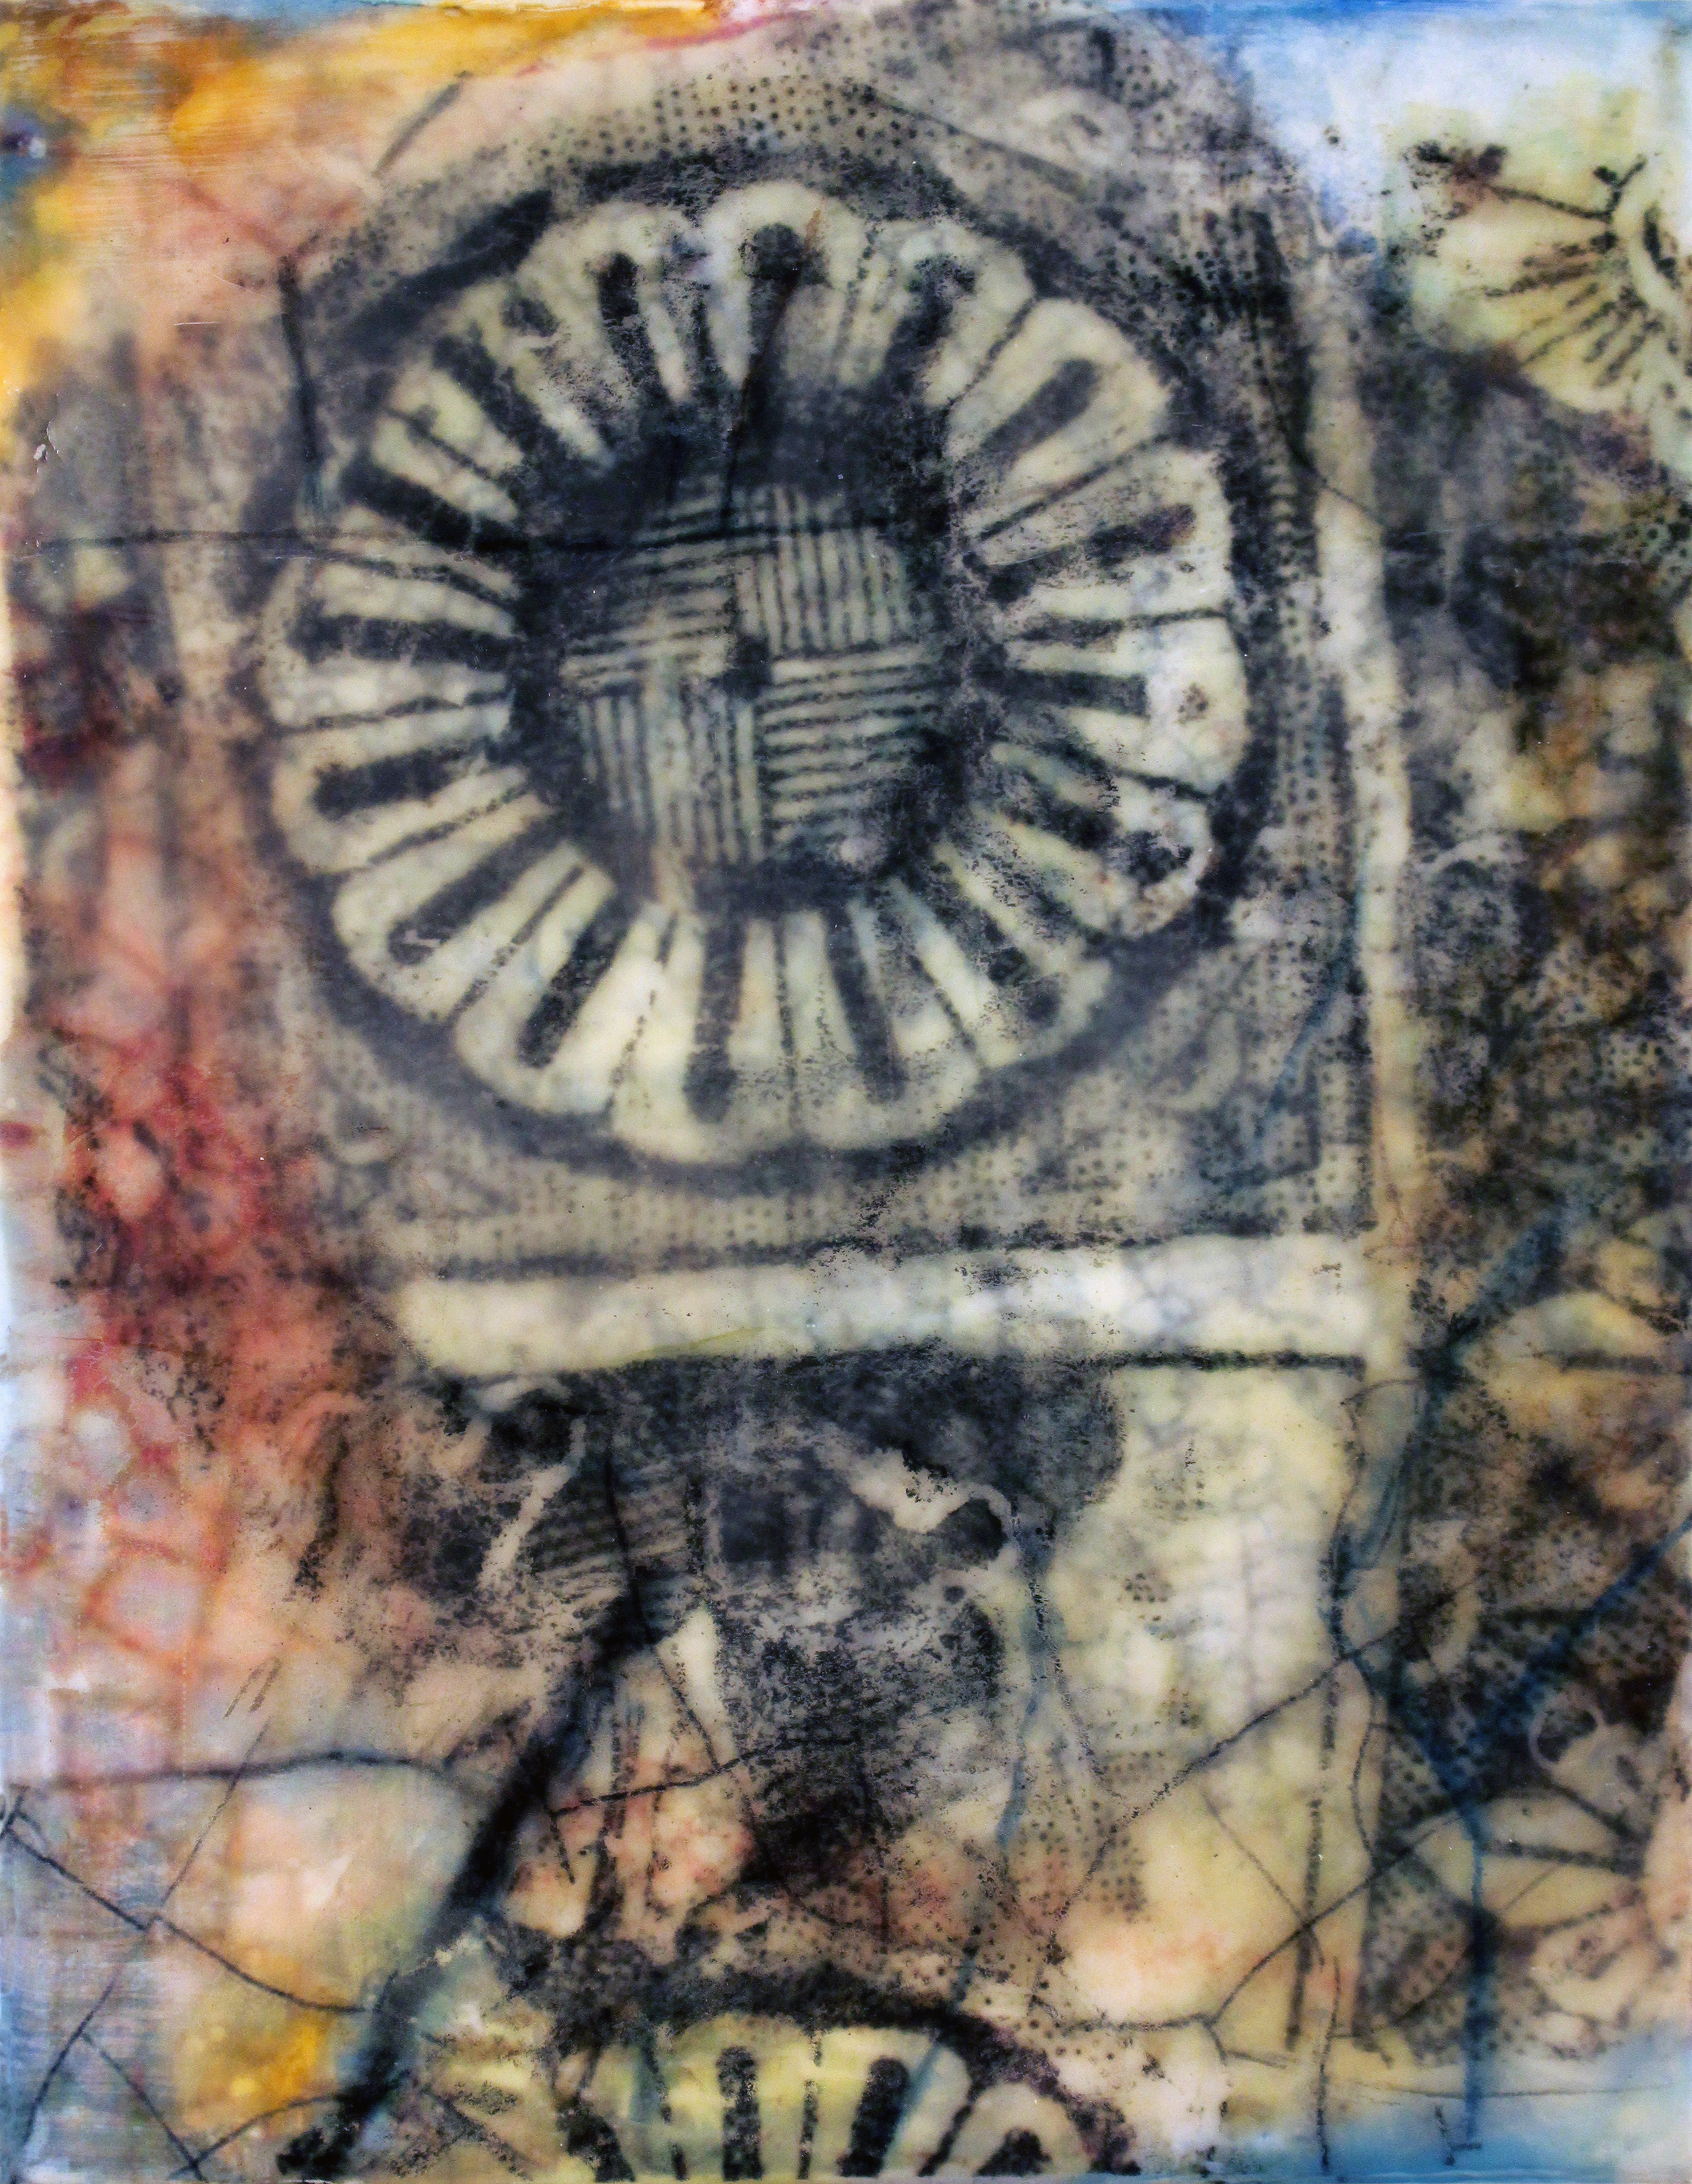 "View Image Details FRAGMENT #3, 2014 Oil paints, powdered pigments, inks, photo transfer, encaustic on birch panel, 11"" x 9"" x 2.5"" (Private Collec"